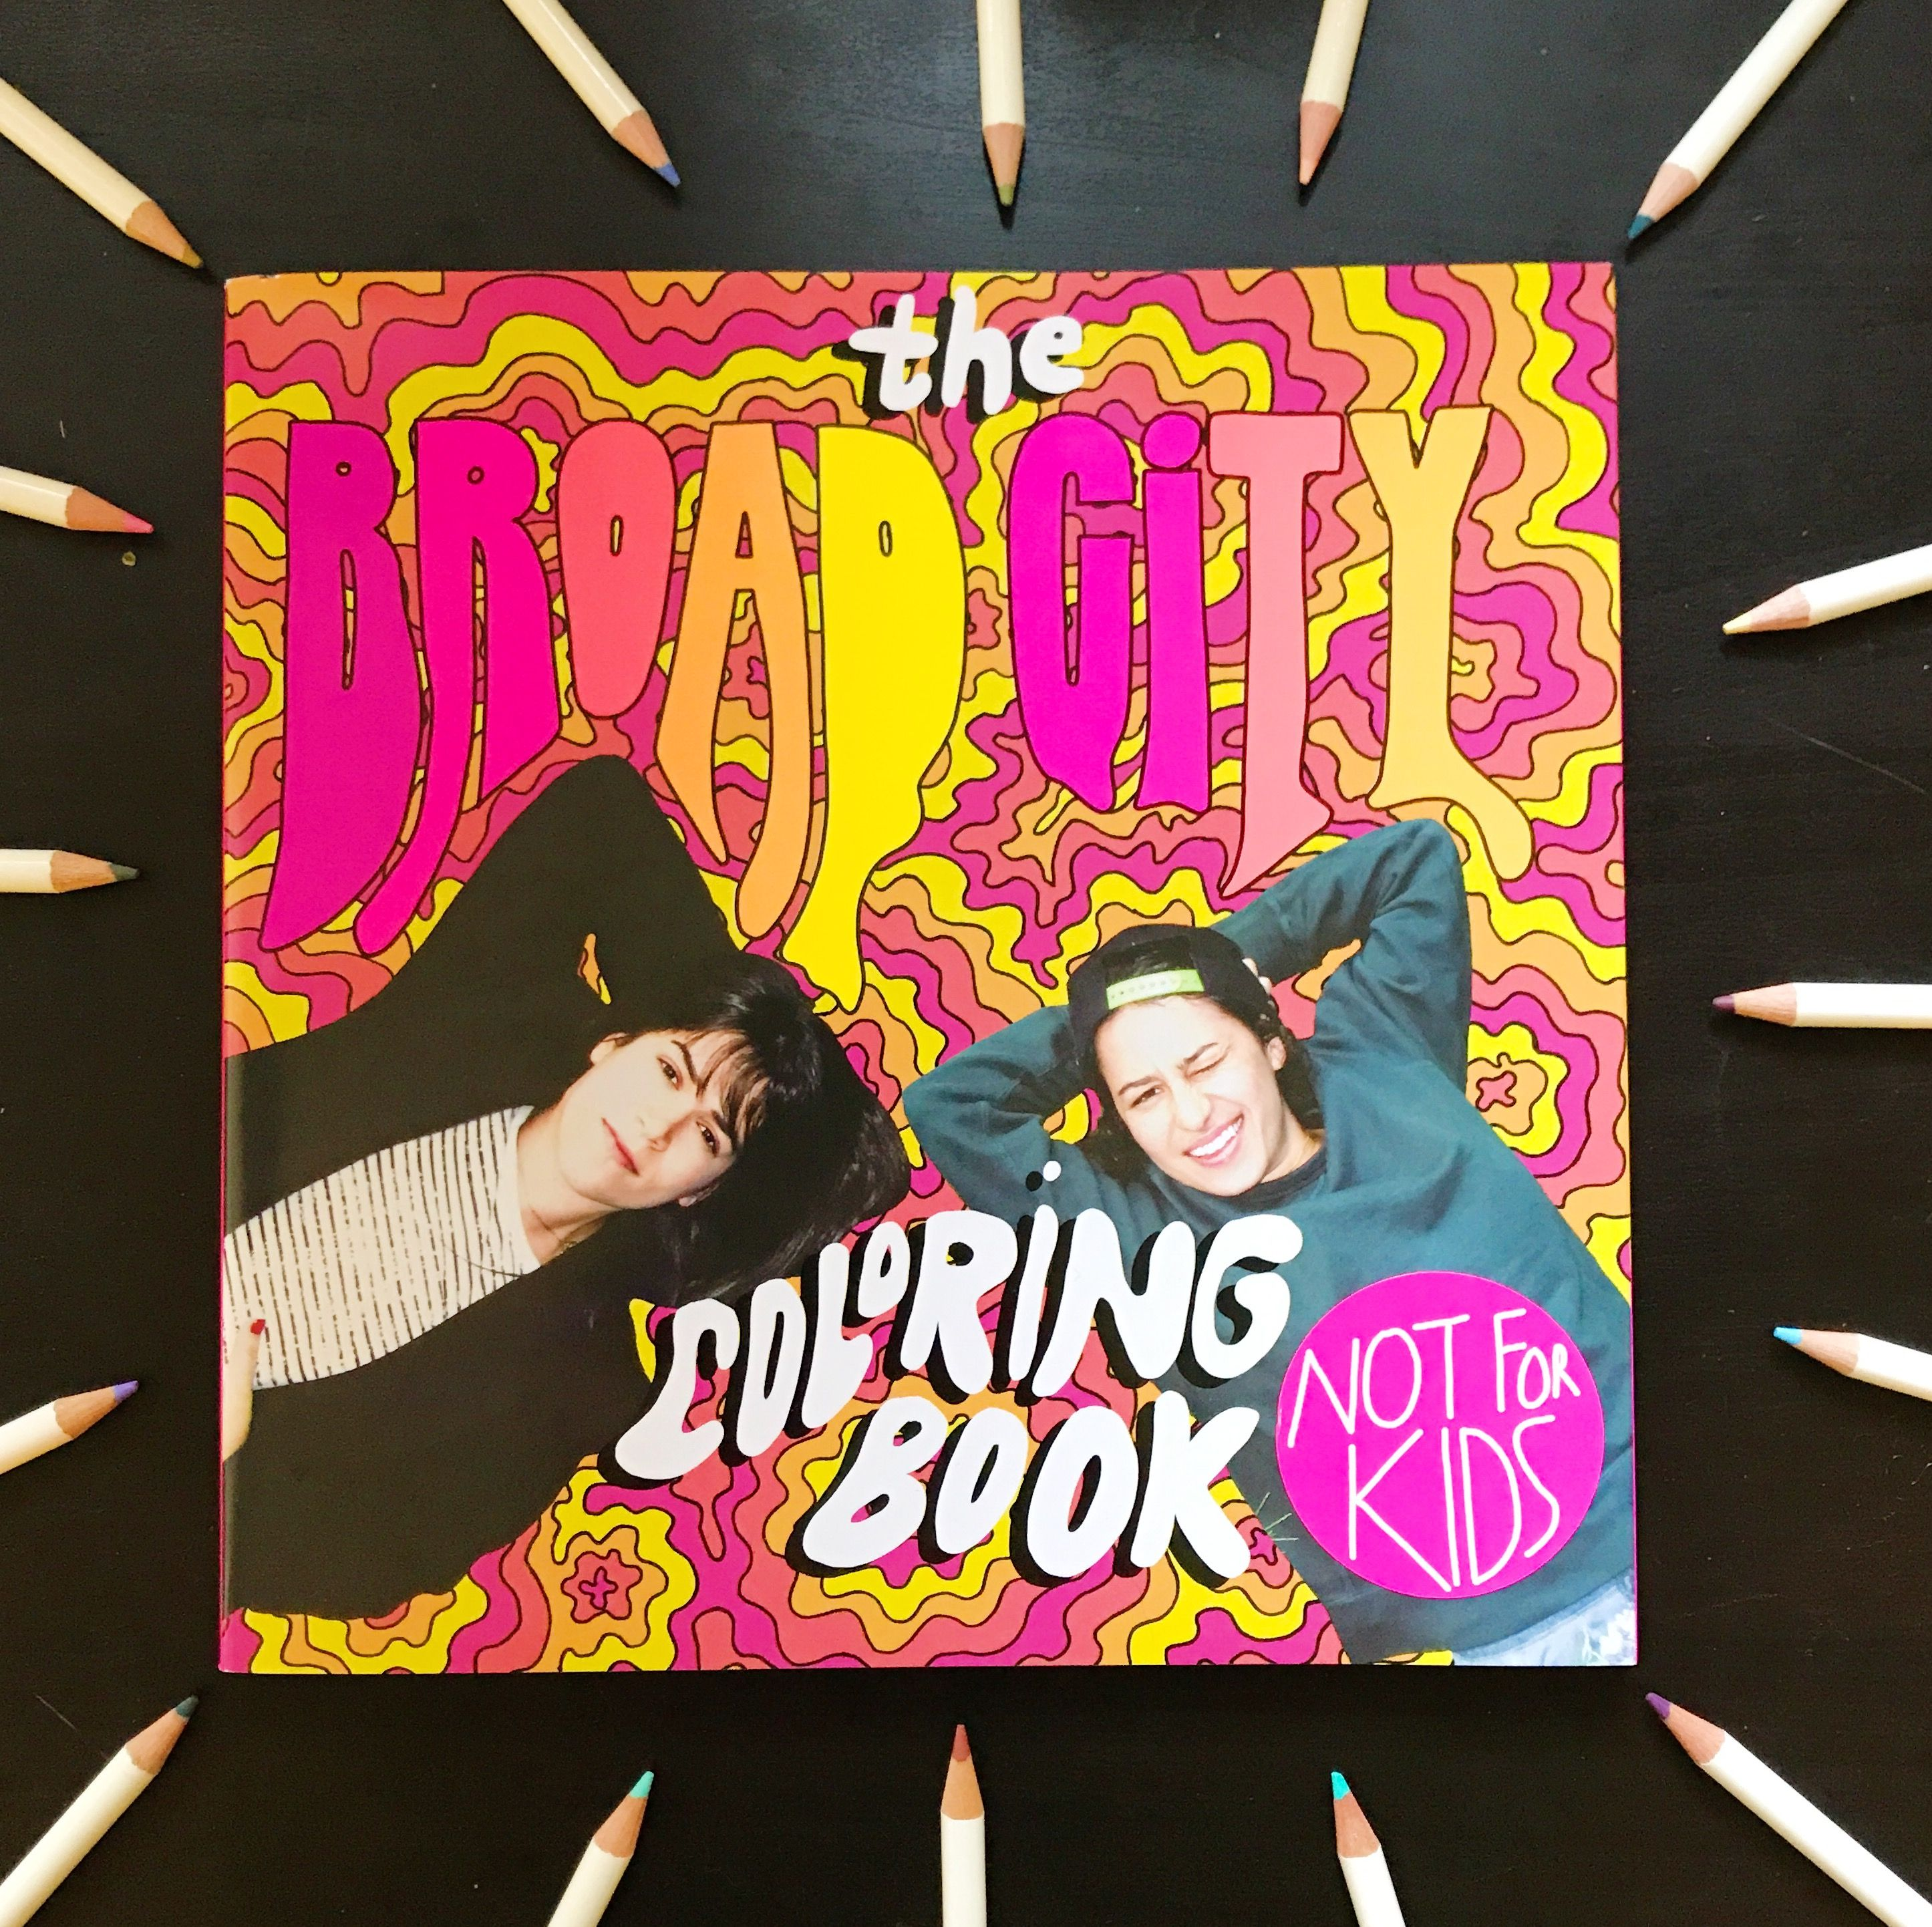 Broad City Coloring Book Awesome 28 Broad City Coloring Book In 2020 Coloring Books Swear Word Coloring Book Words Coloring Book